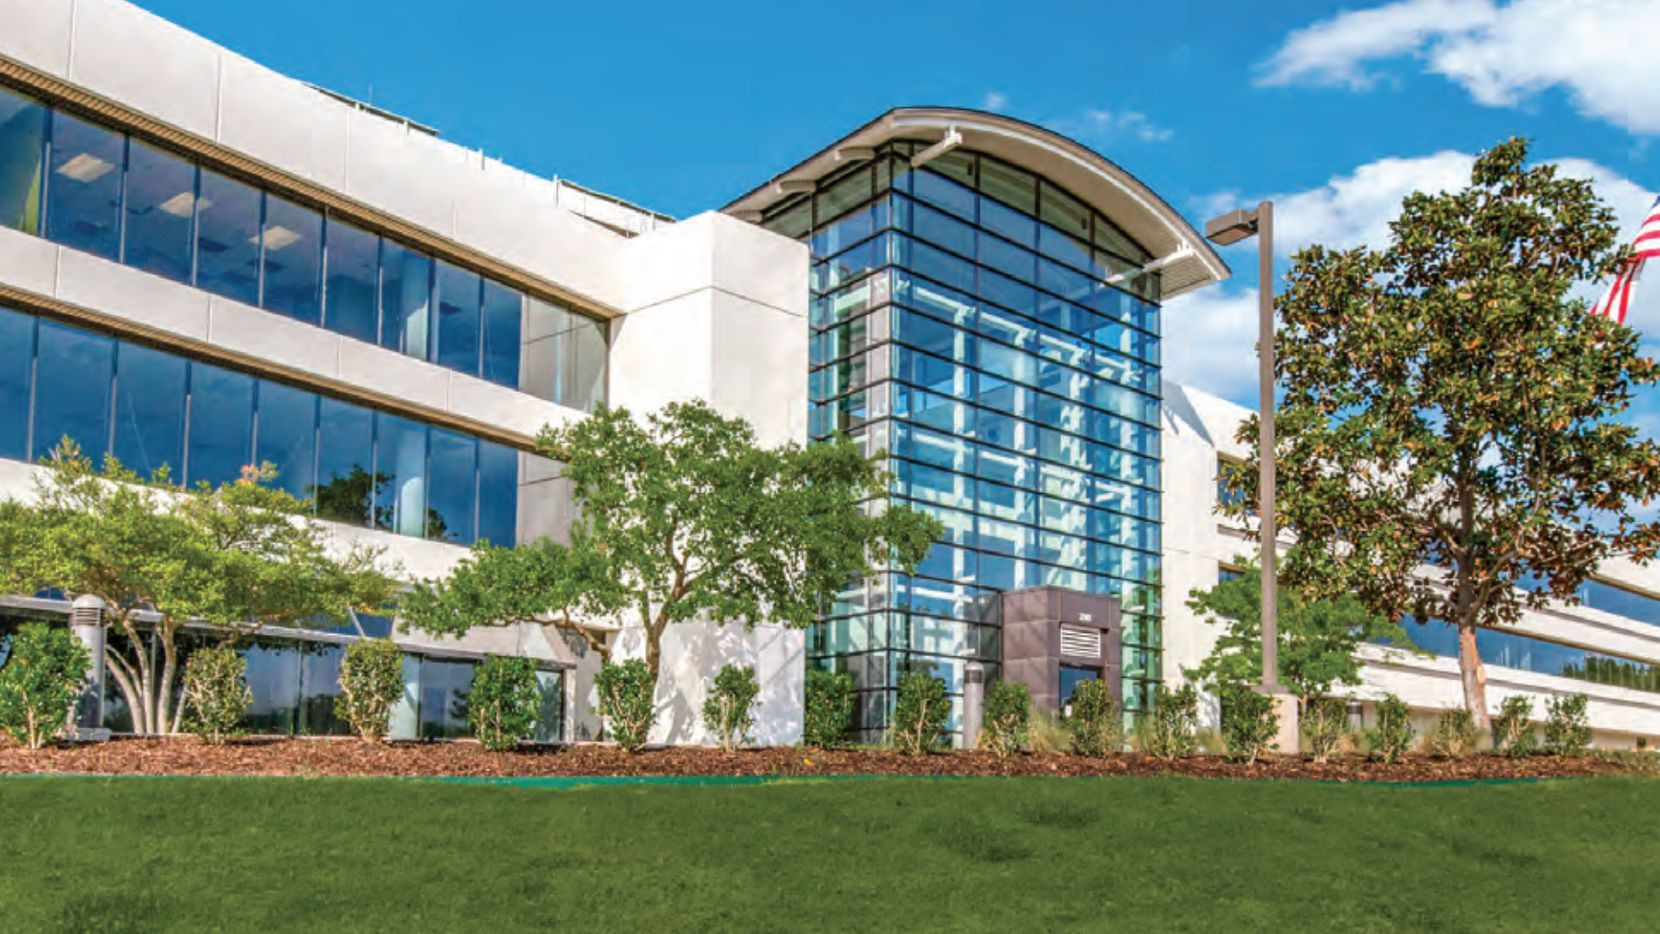 The 2901 Kinwest Parkway office buildings contain 160,000 square feet of space.